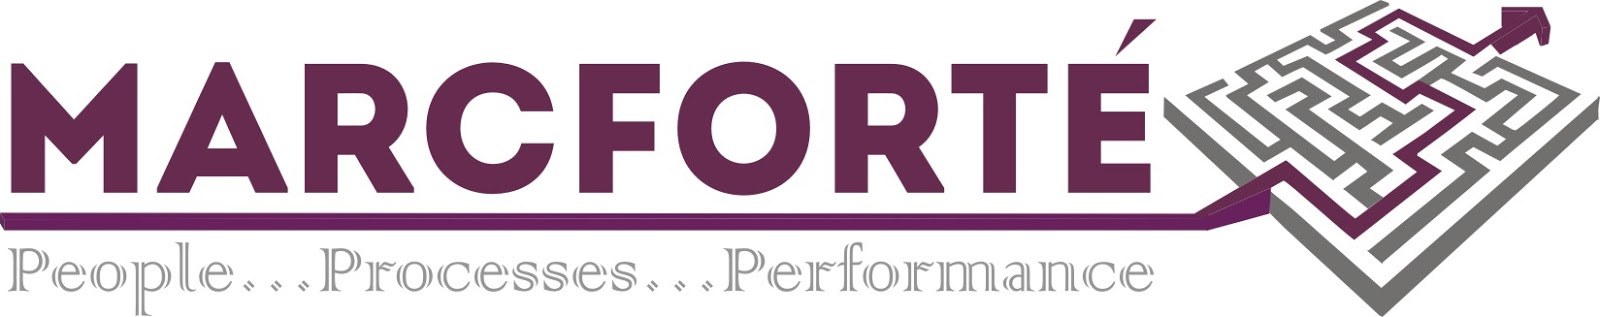 Marcforte Business Consulting Limited Recruitment Portal